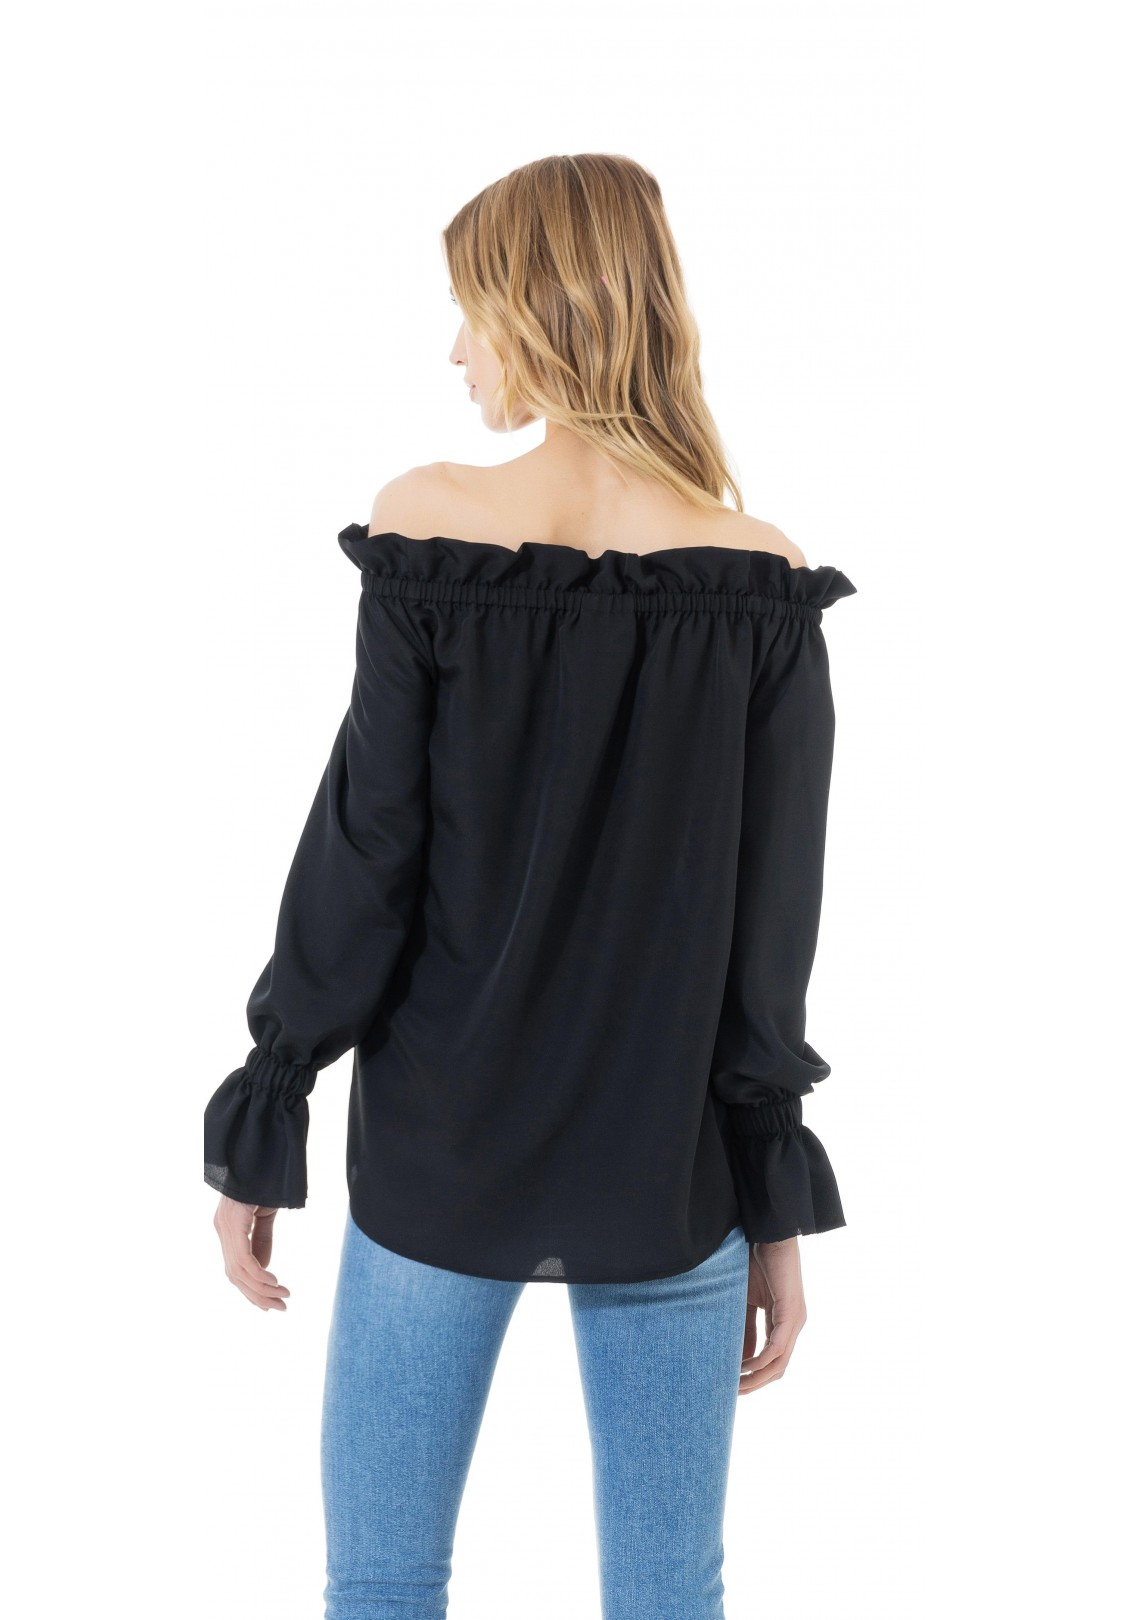 BLOUSE - GBD4773 - GAELLE PARIS